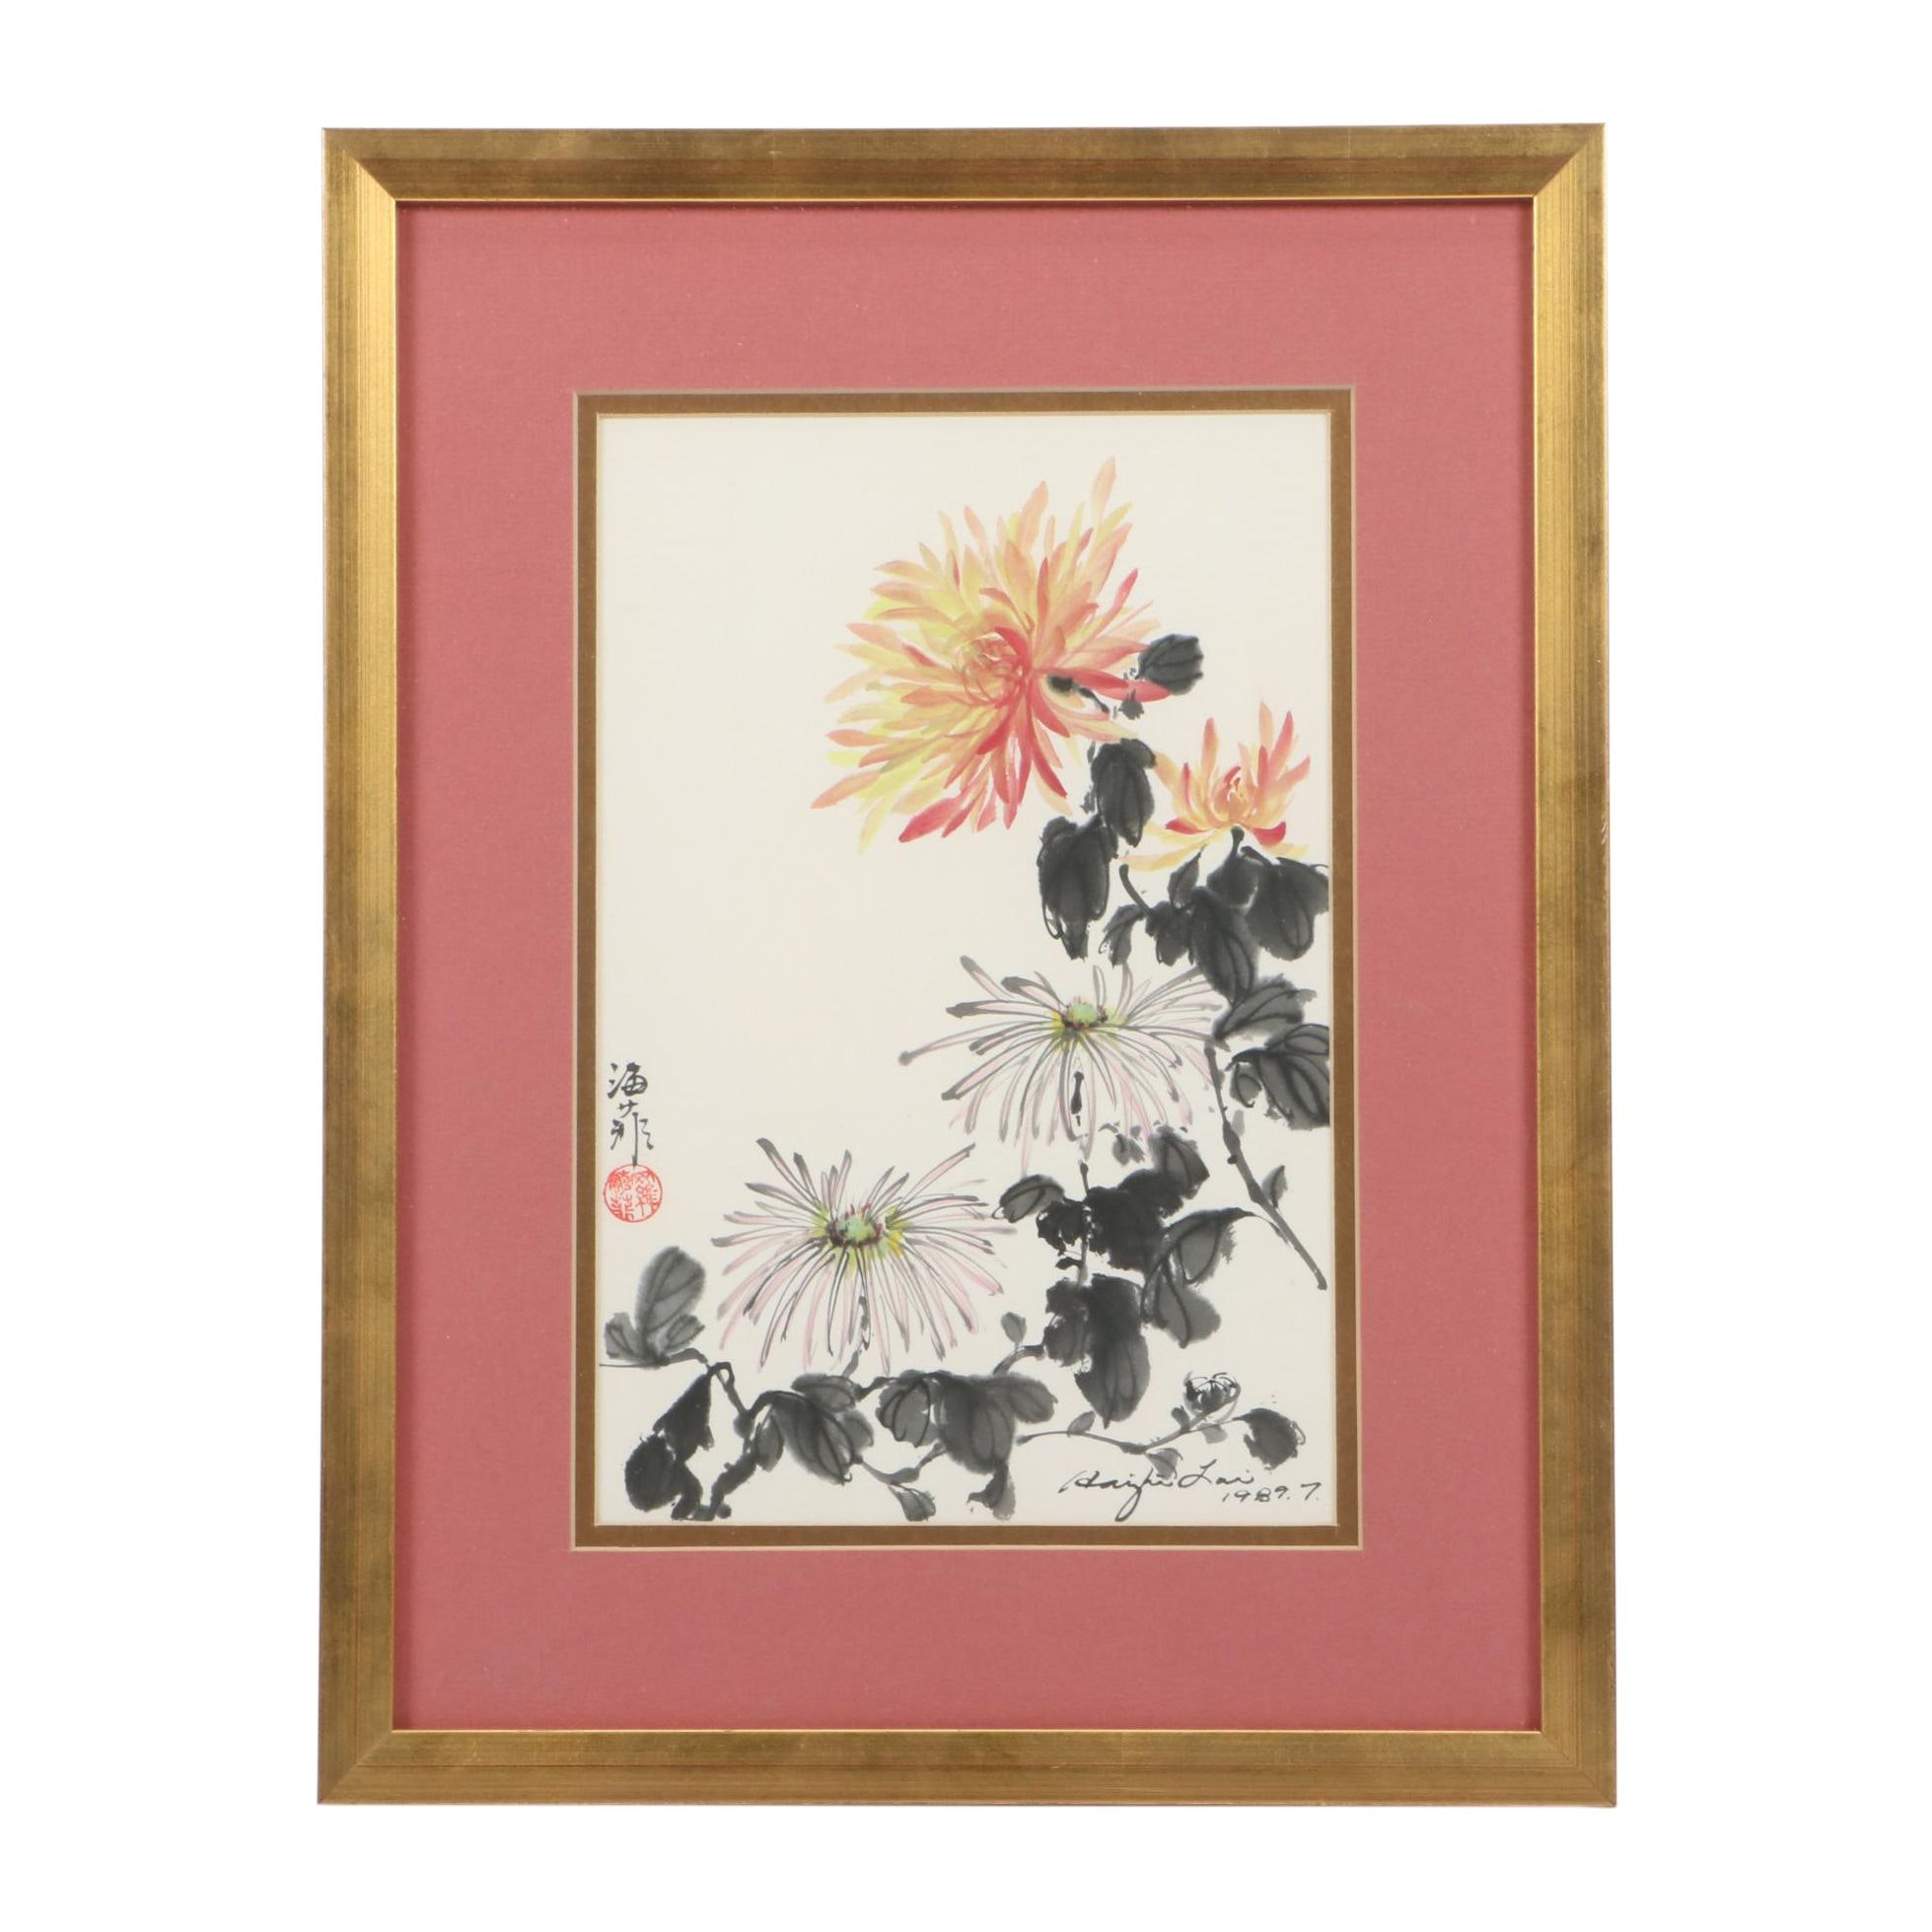 1989 Chinese Style Floral Watercolor Painting